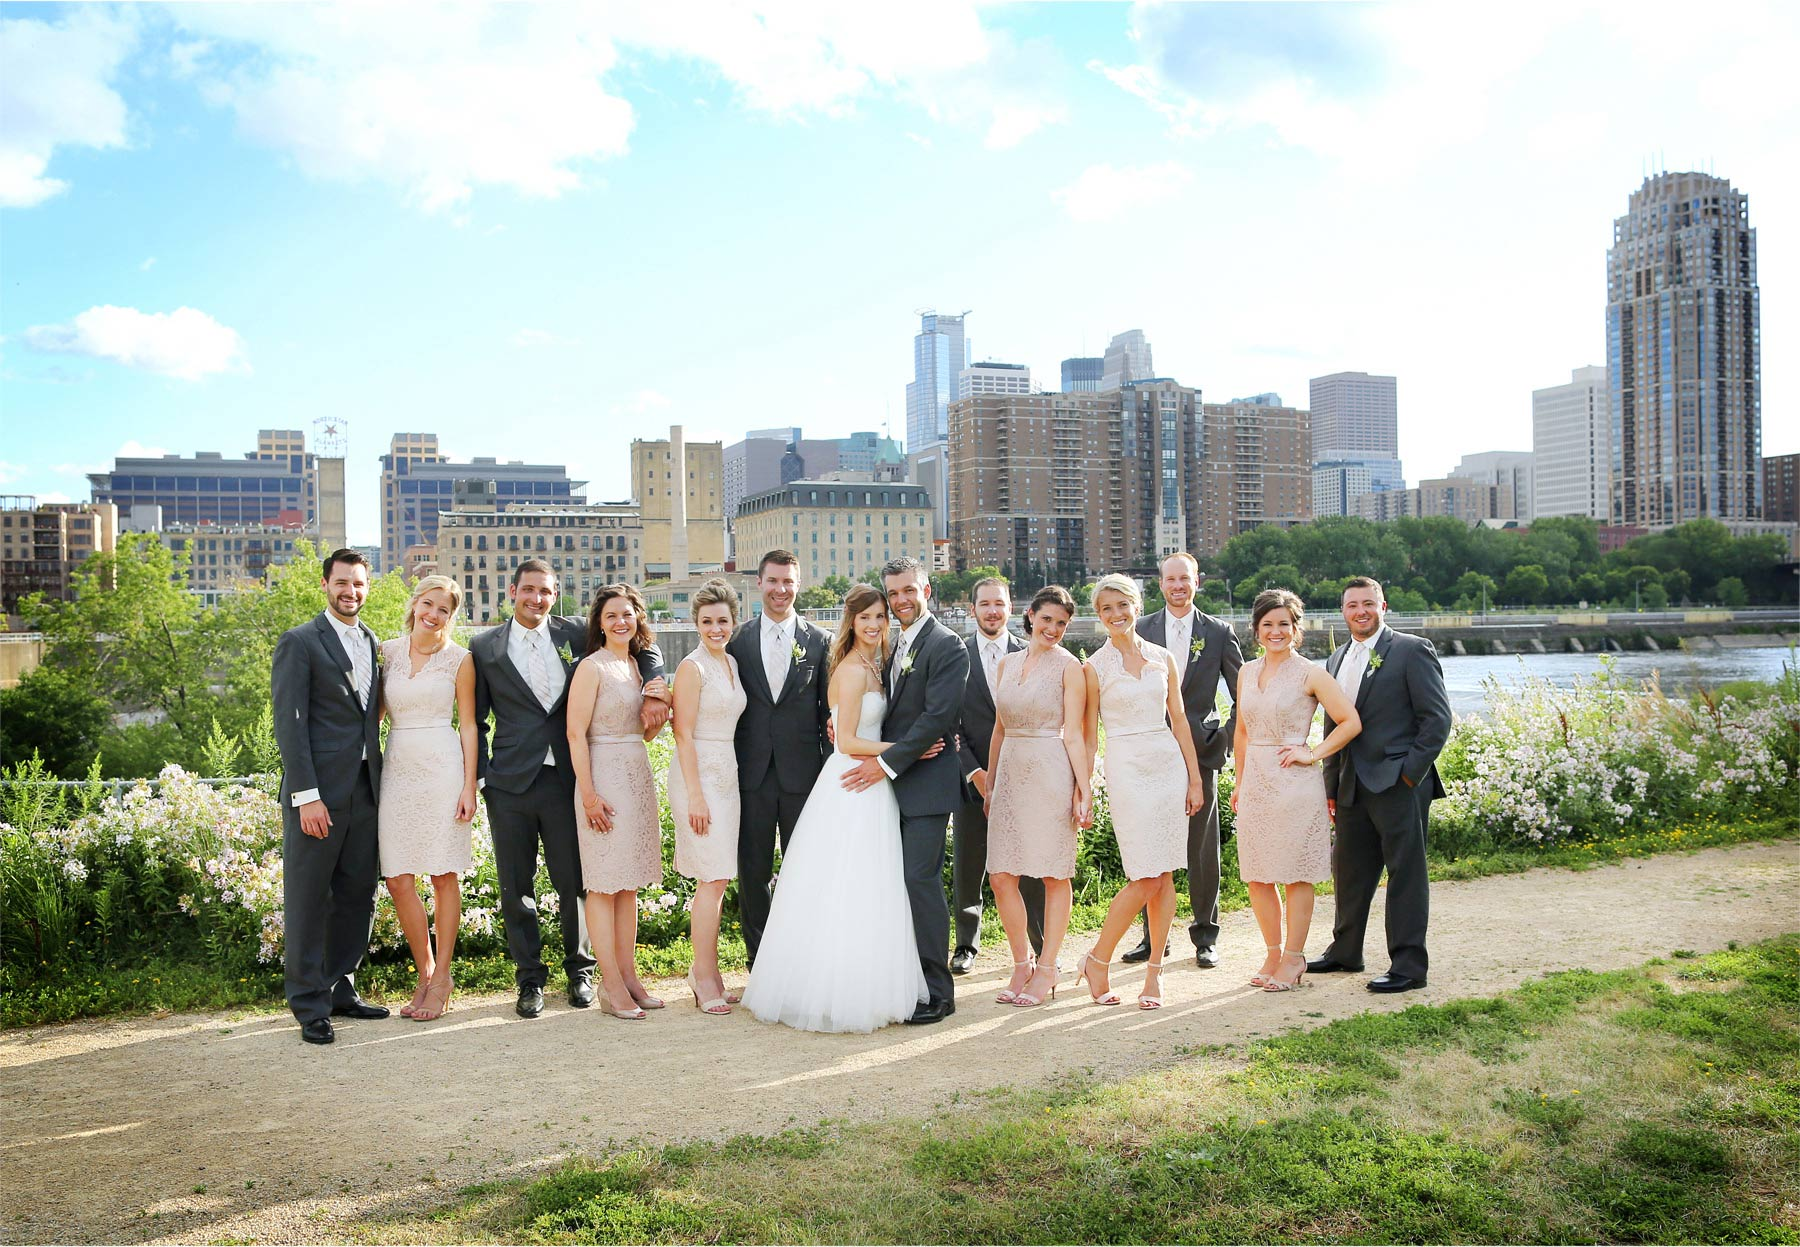 15-Minneapolis-Minnesota-Wedding-Photographer-by-Andrew-Vick-Photography-Summer-Bride-Groom-Bridesmaids-Groomsmen-Bridal-Party-Downtown-Mississippi-River-Katie-and-Travis.jpg